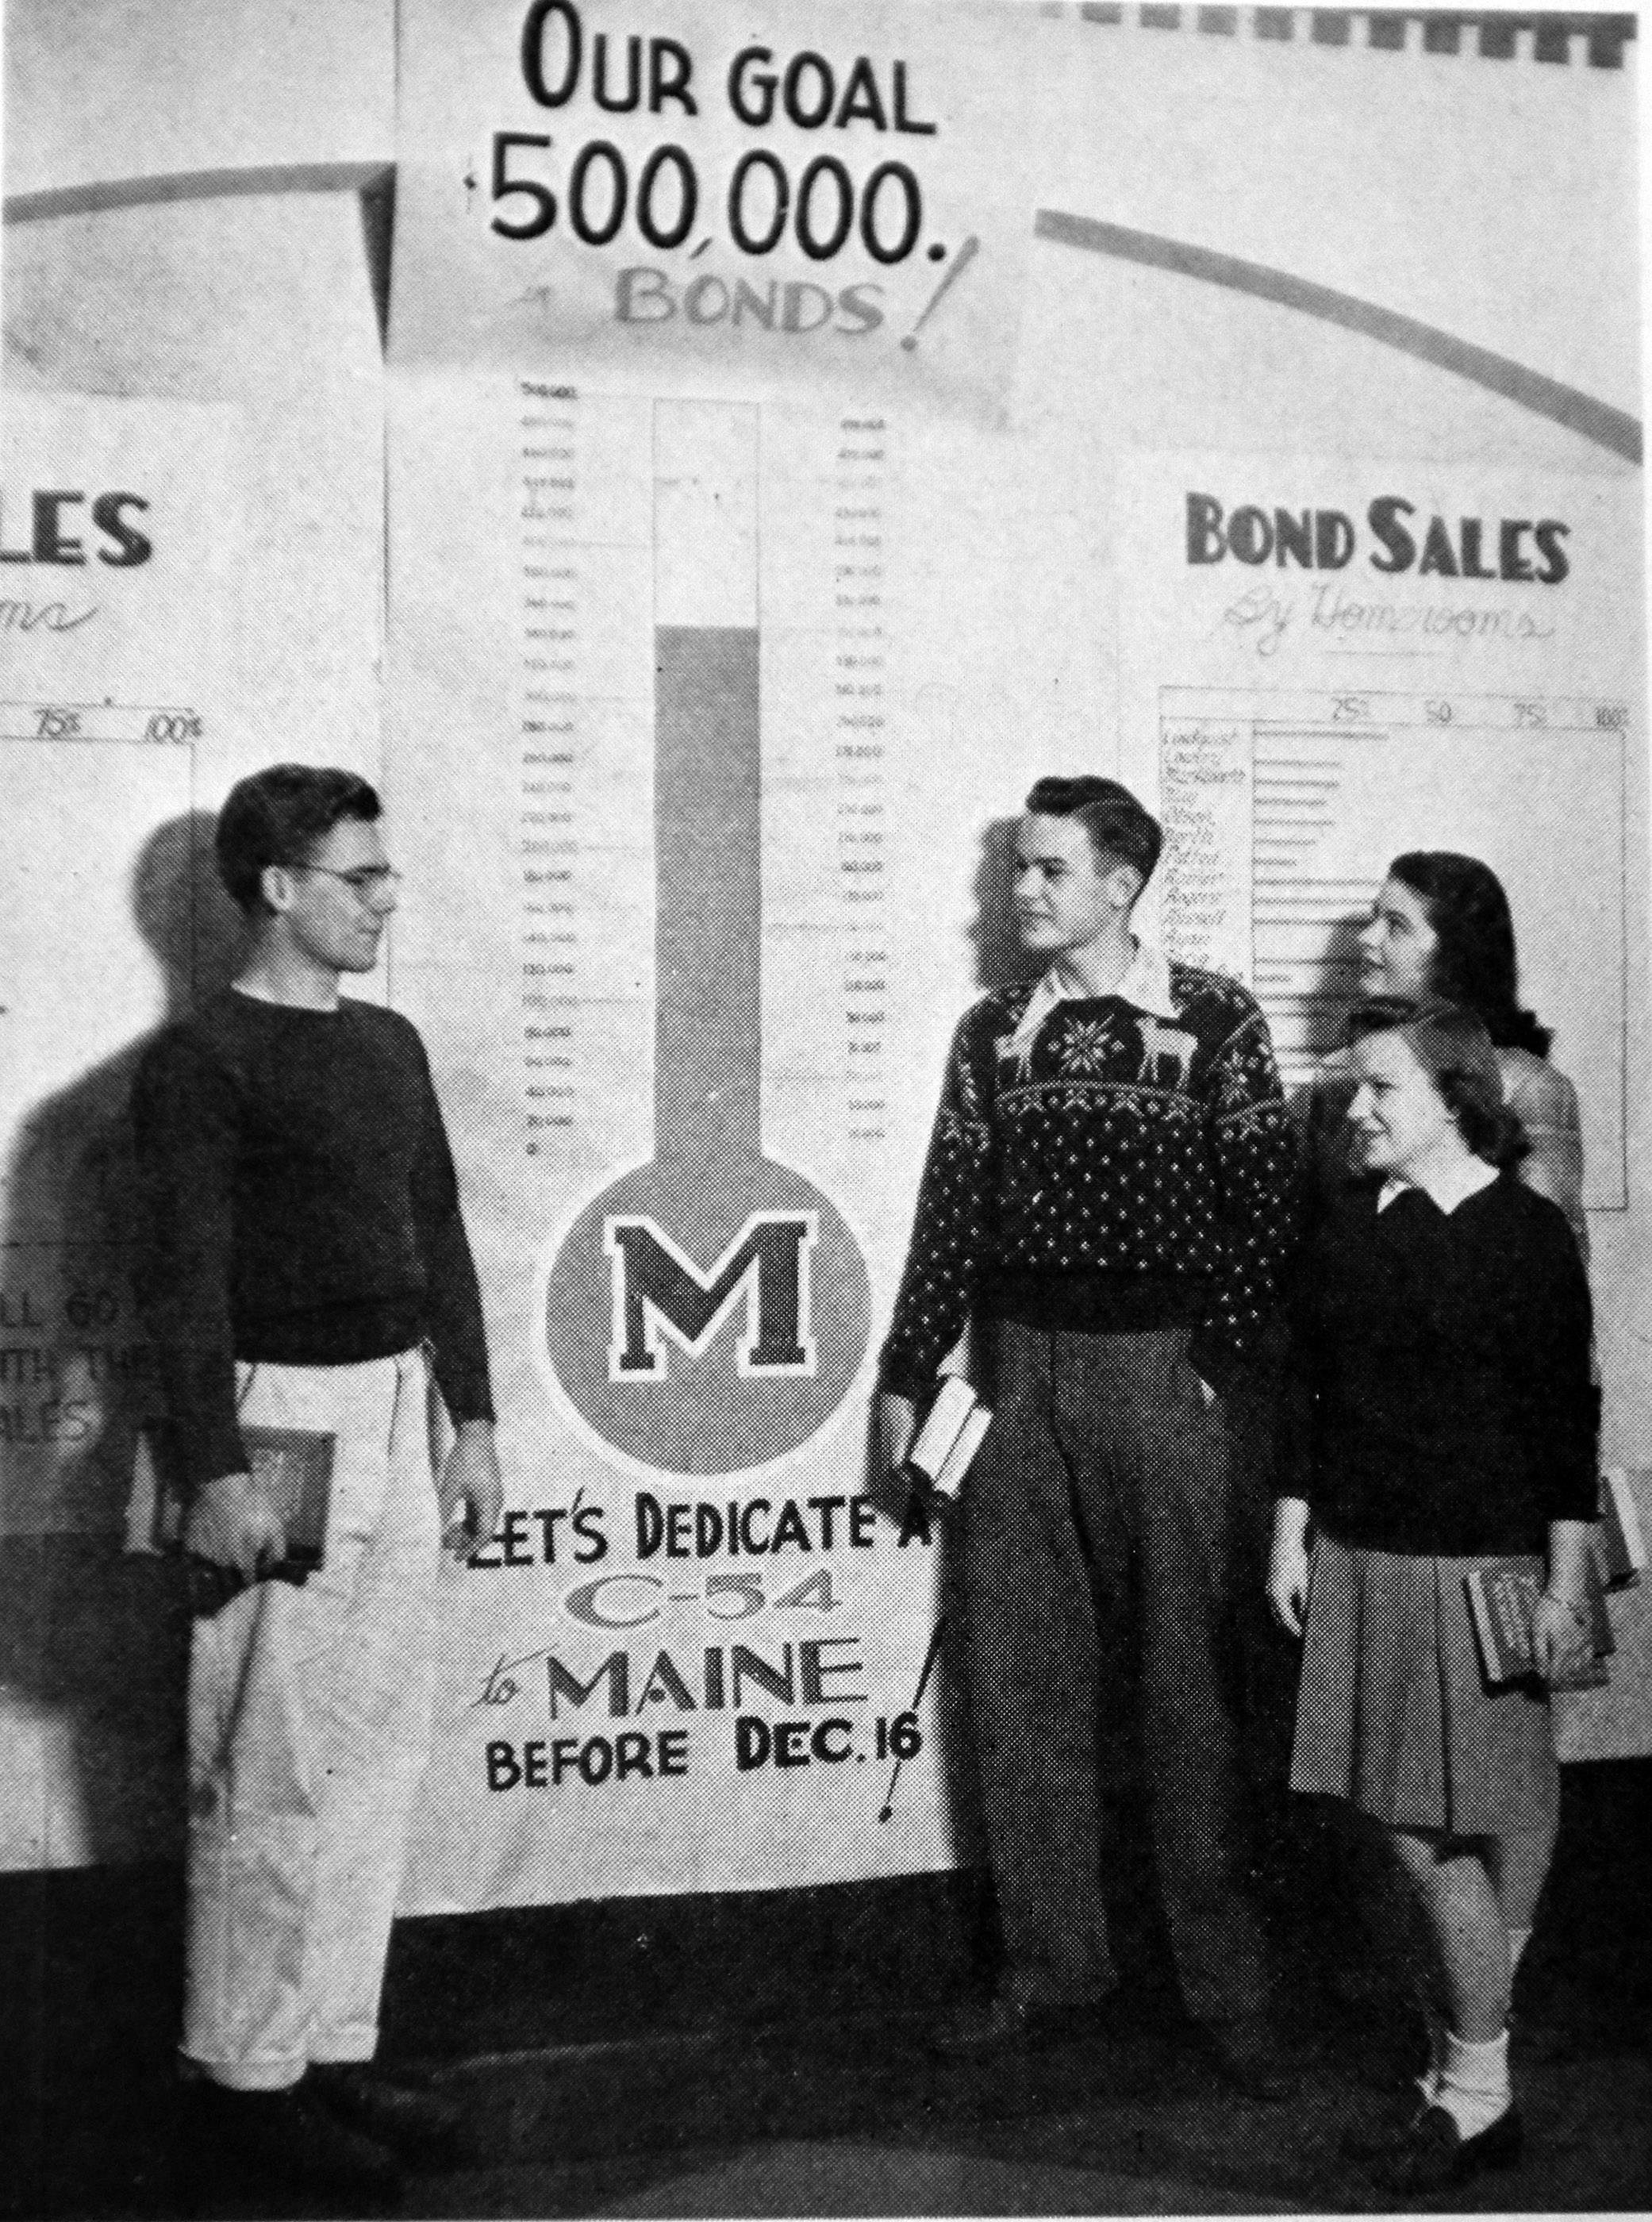 Students at Maine Township High School raised $551,000 during a two-week war bond drive in December 1944. For their efforts, a C-54 airplane was dedicated as the Maine Flyer on Feb. 16, 1945.